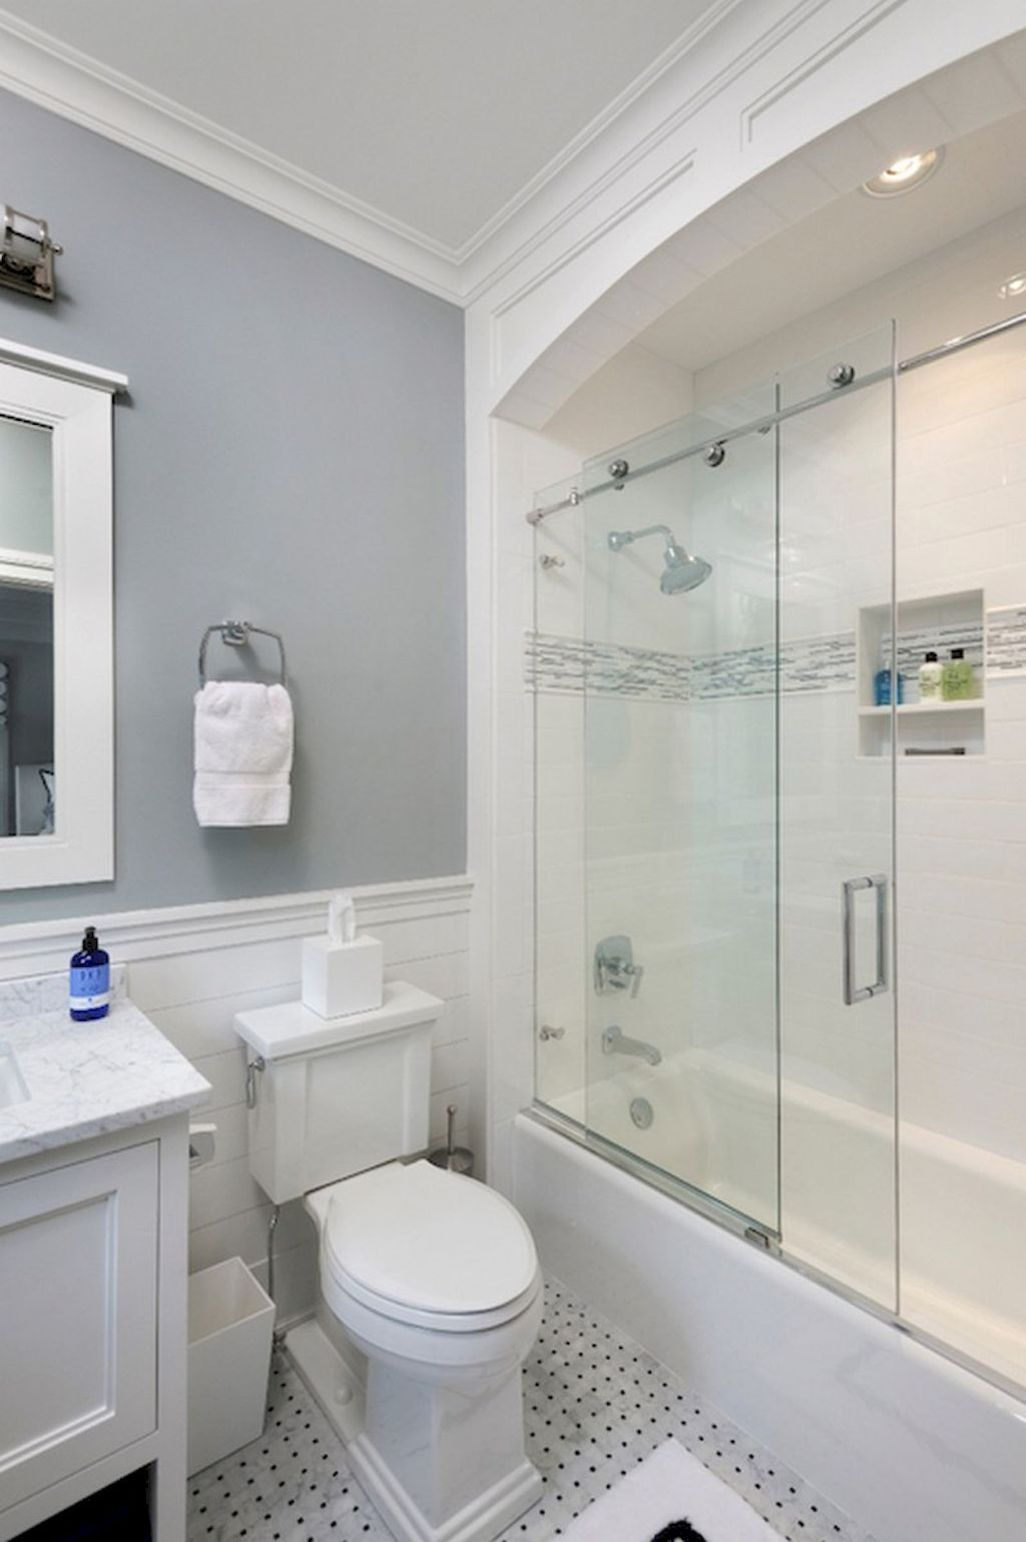 Awesome Small Master Bathroom Remodel Design Ideas 29 | Bathrooms ...